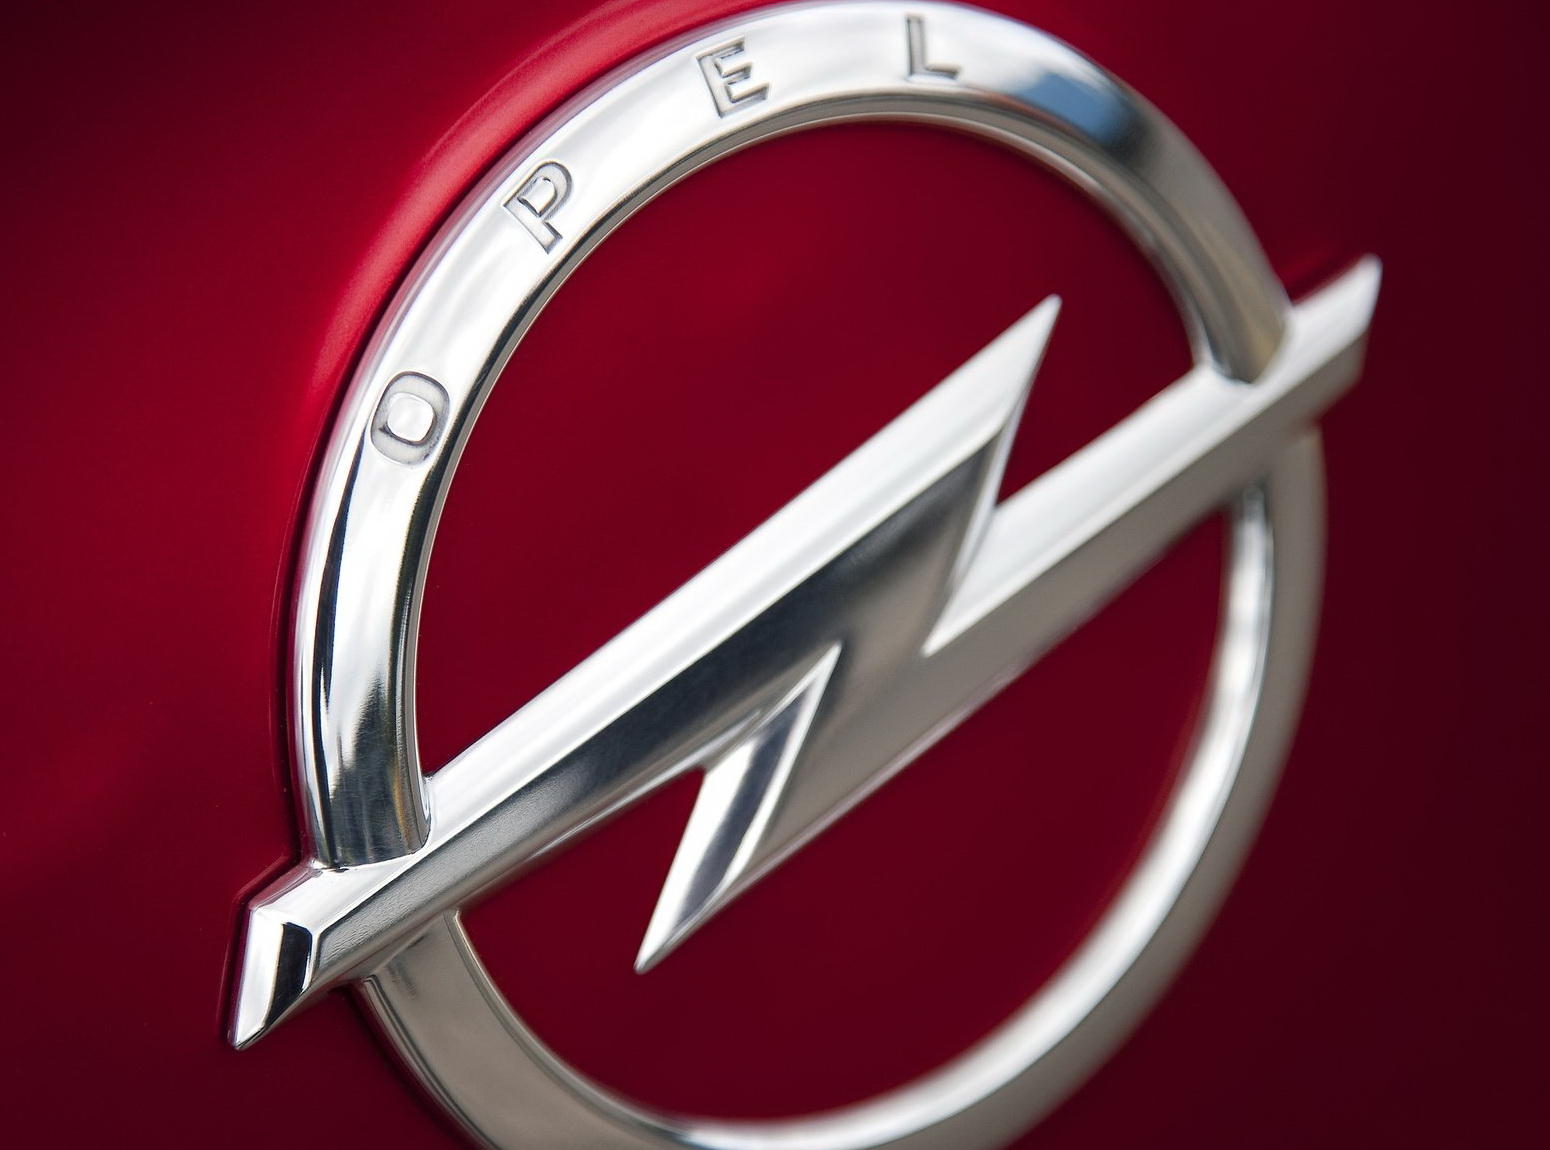 opel logo wallpapers - photo #22